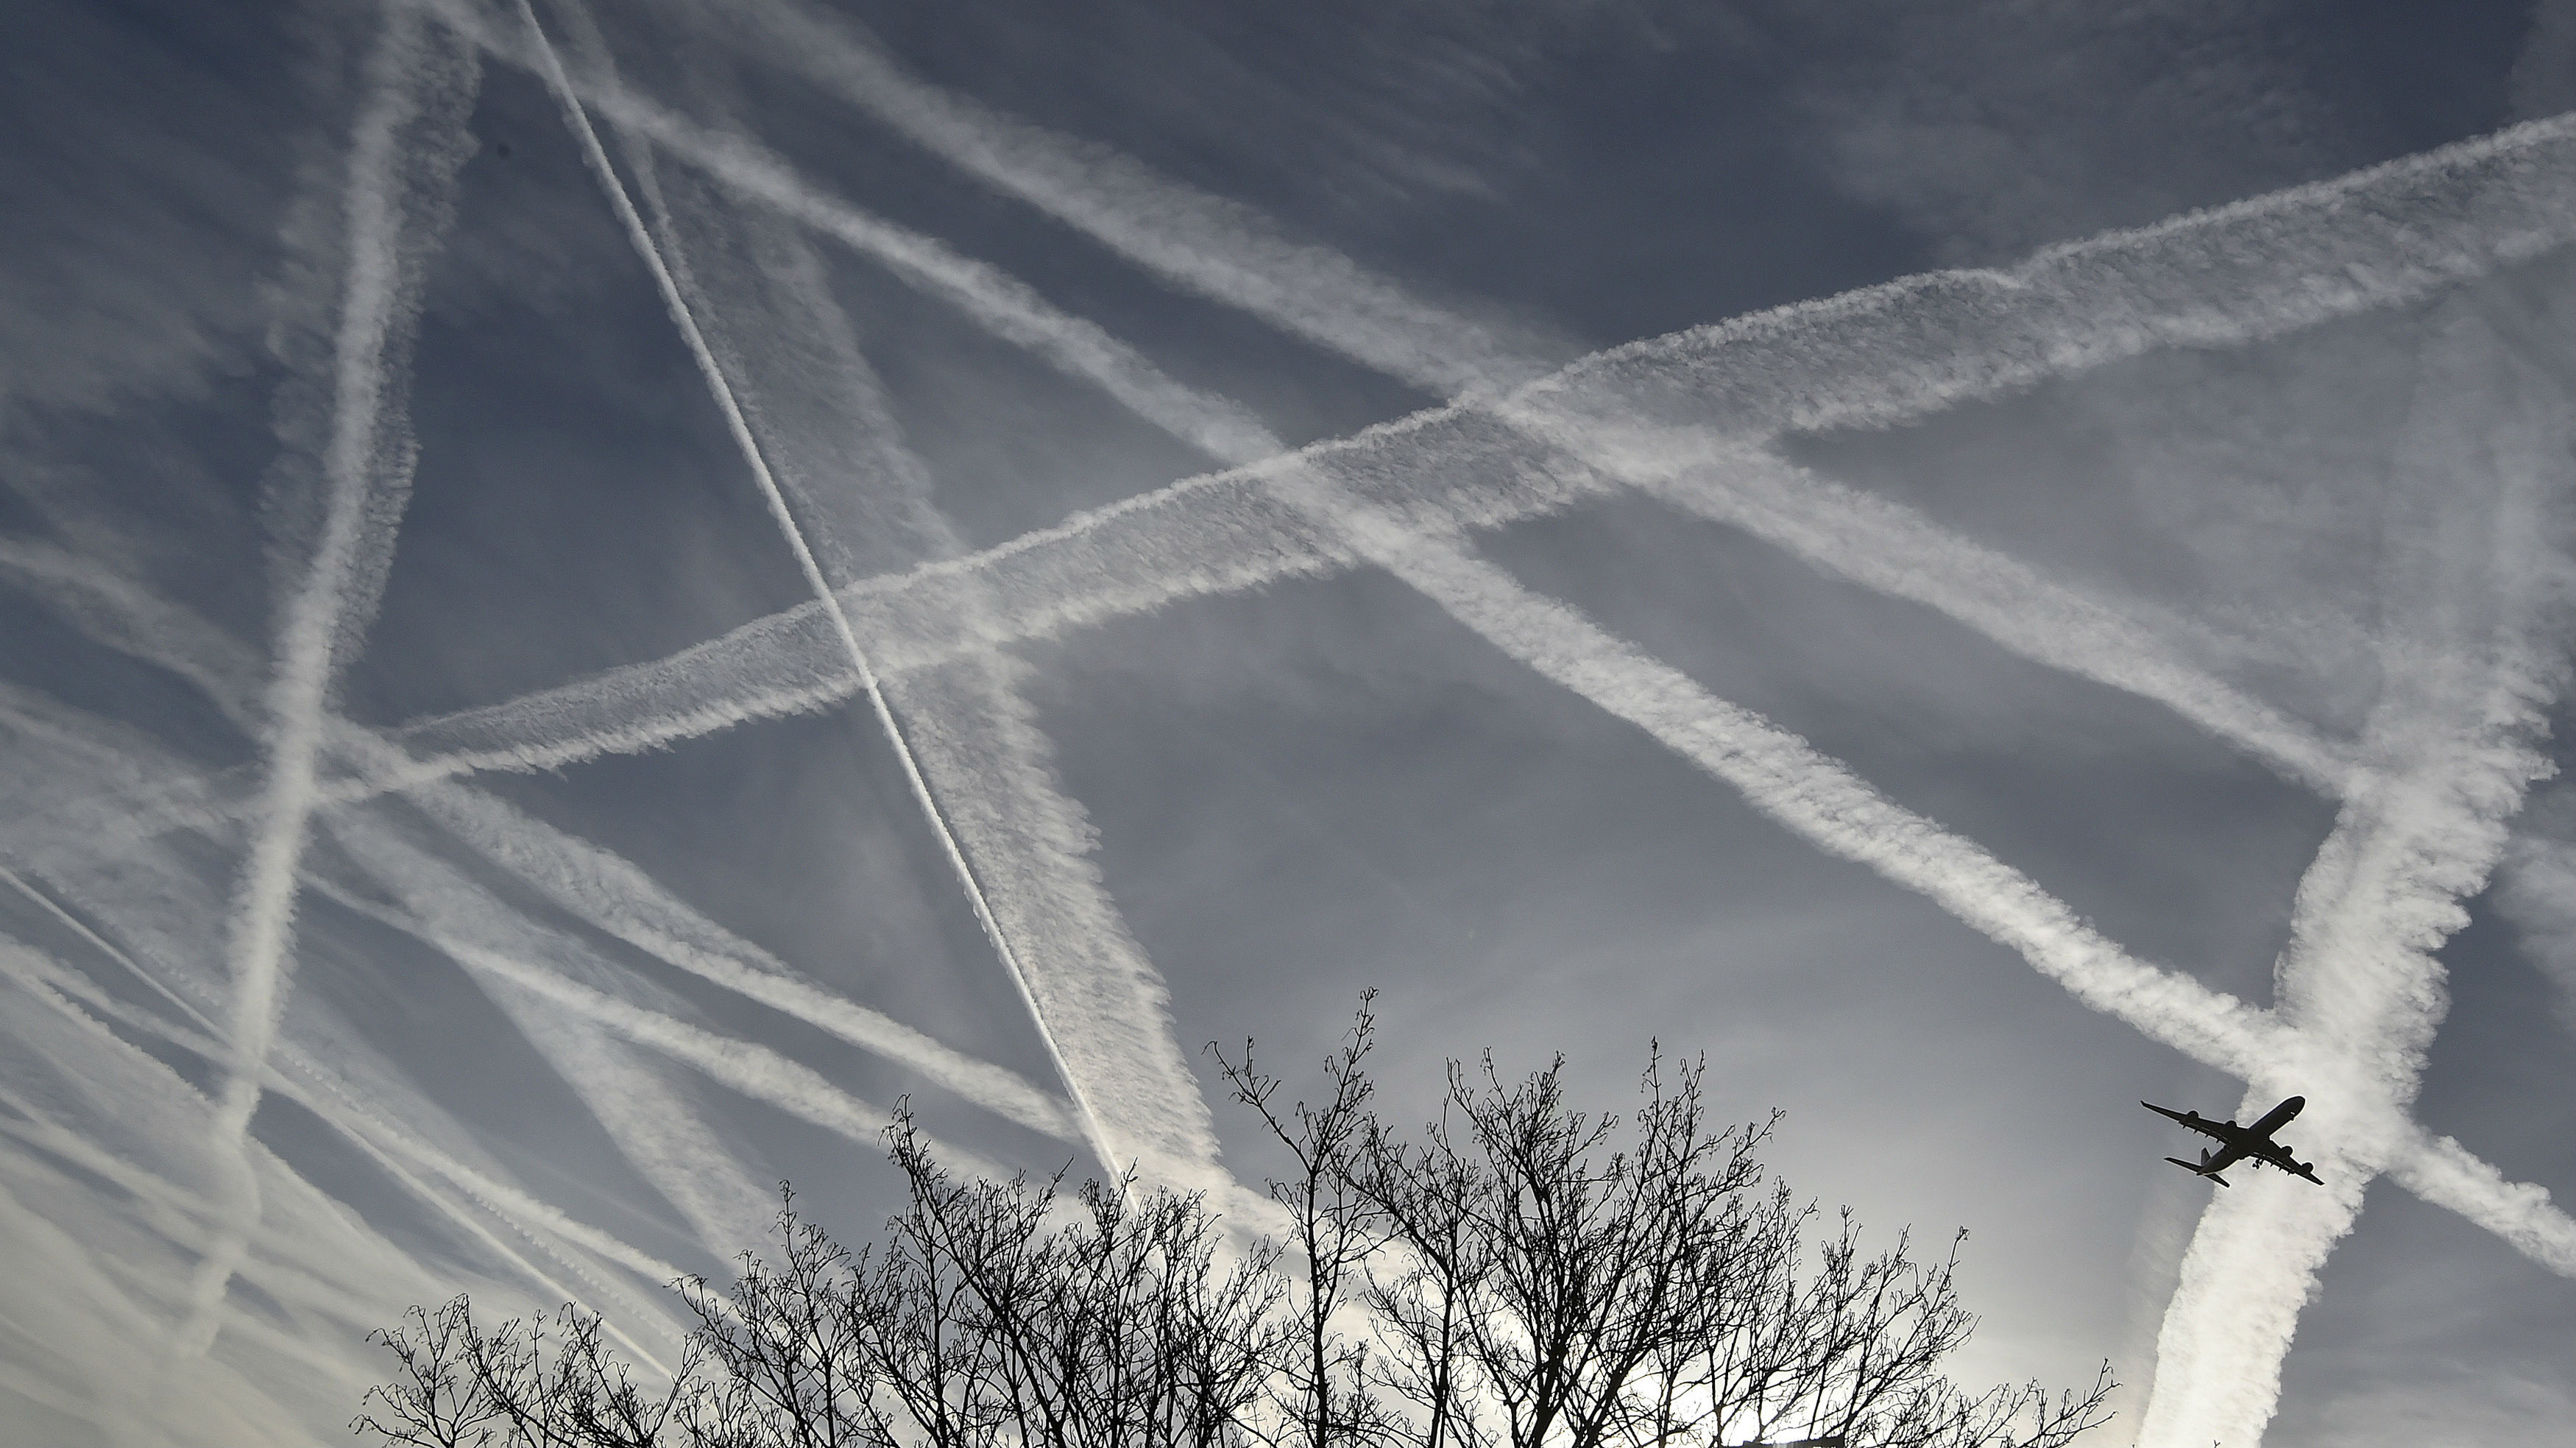 A passenger plane flies through aircraft contrails in the skies near Heathrow Airport in west London, April 12, 2015.